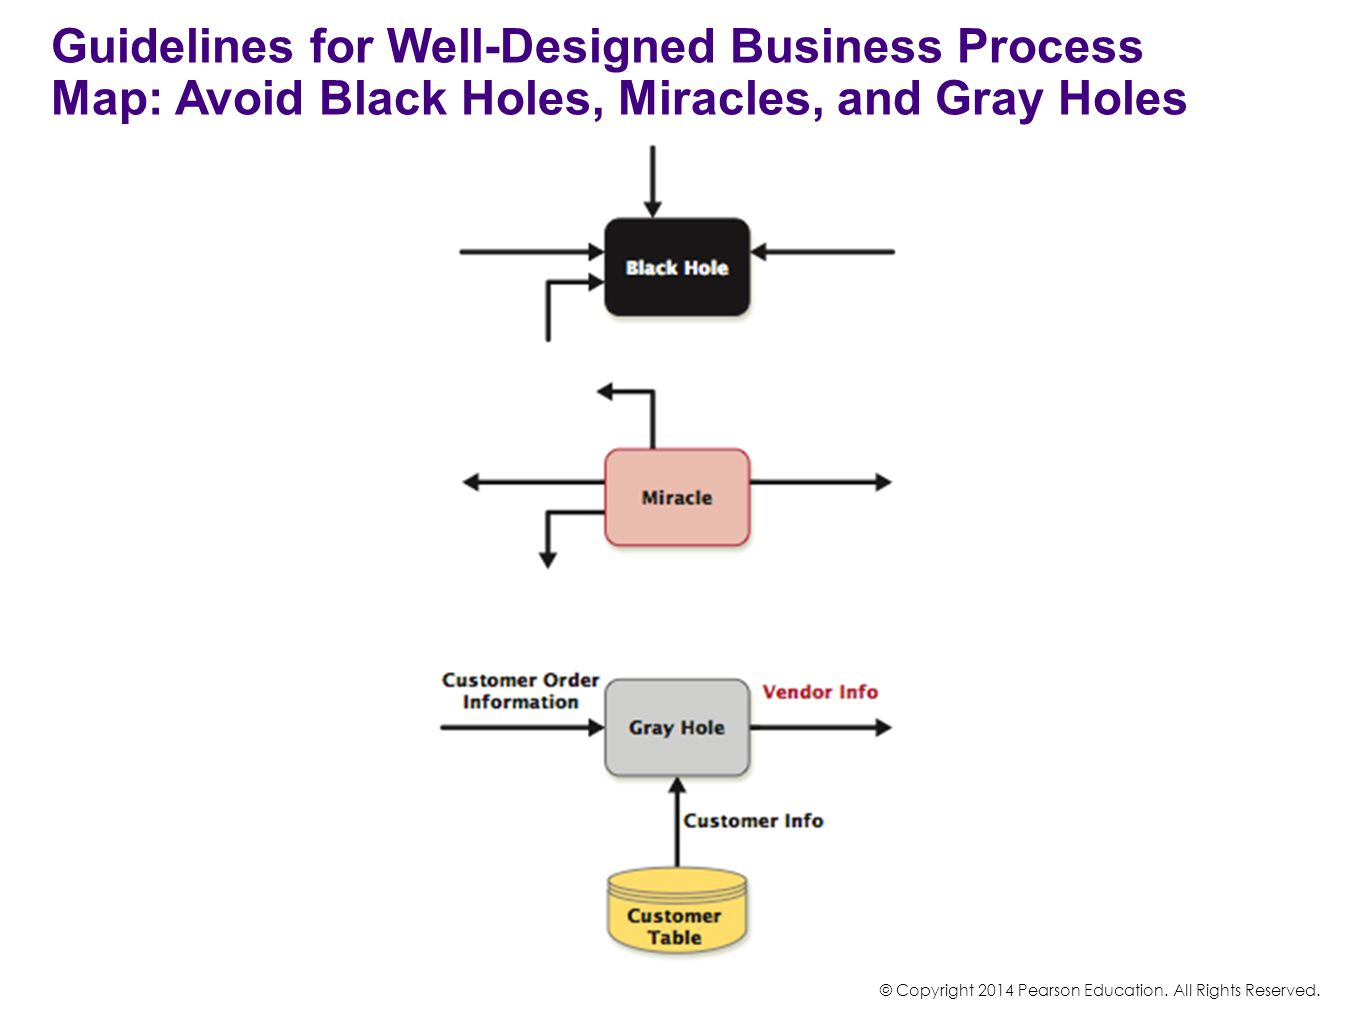 Guidelines for Well-Designed Business Process Map: Avoid Black Holes, Miracles, and Gray Holes © Copyright 2014 Pearson Education. All Rights Reserved